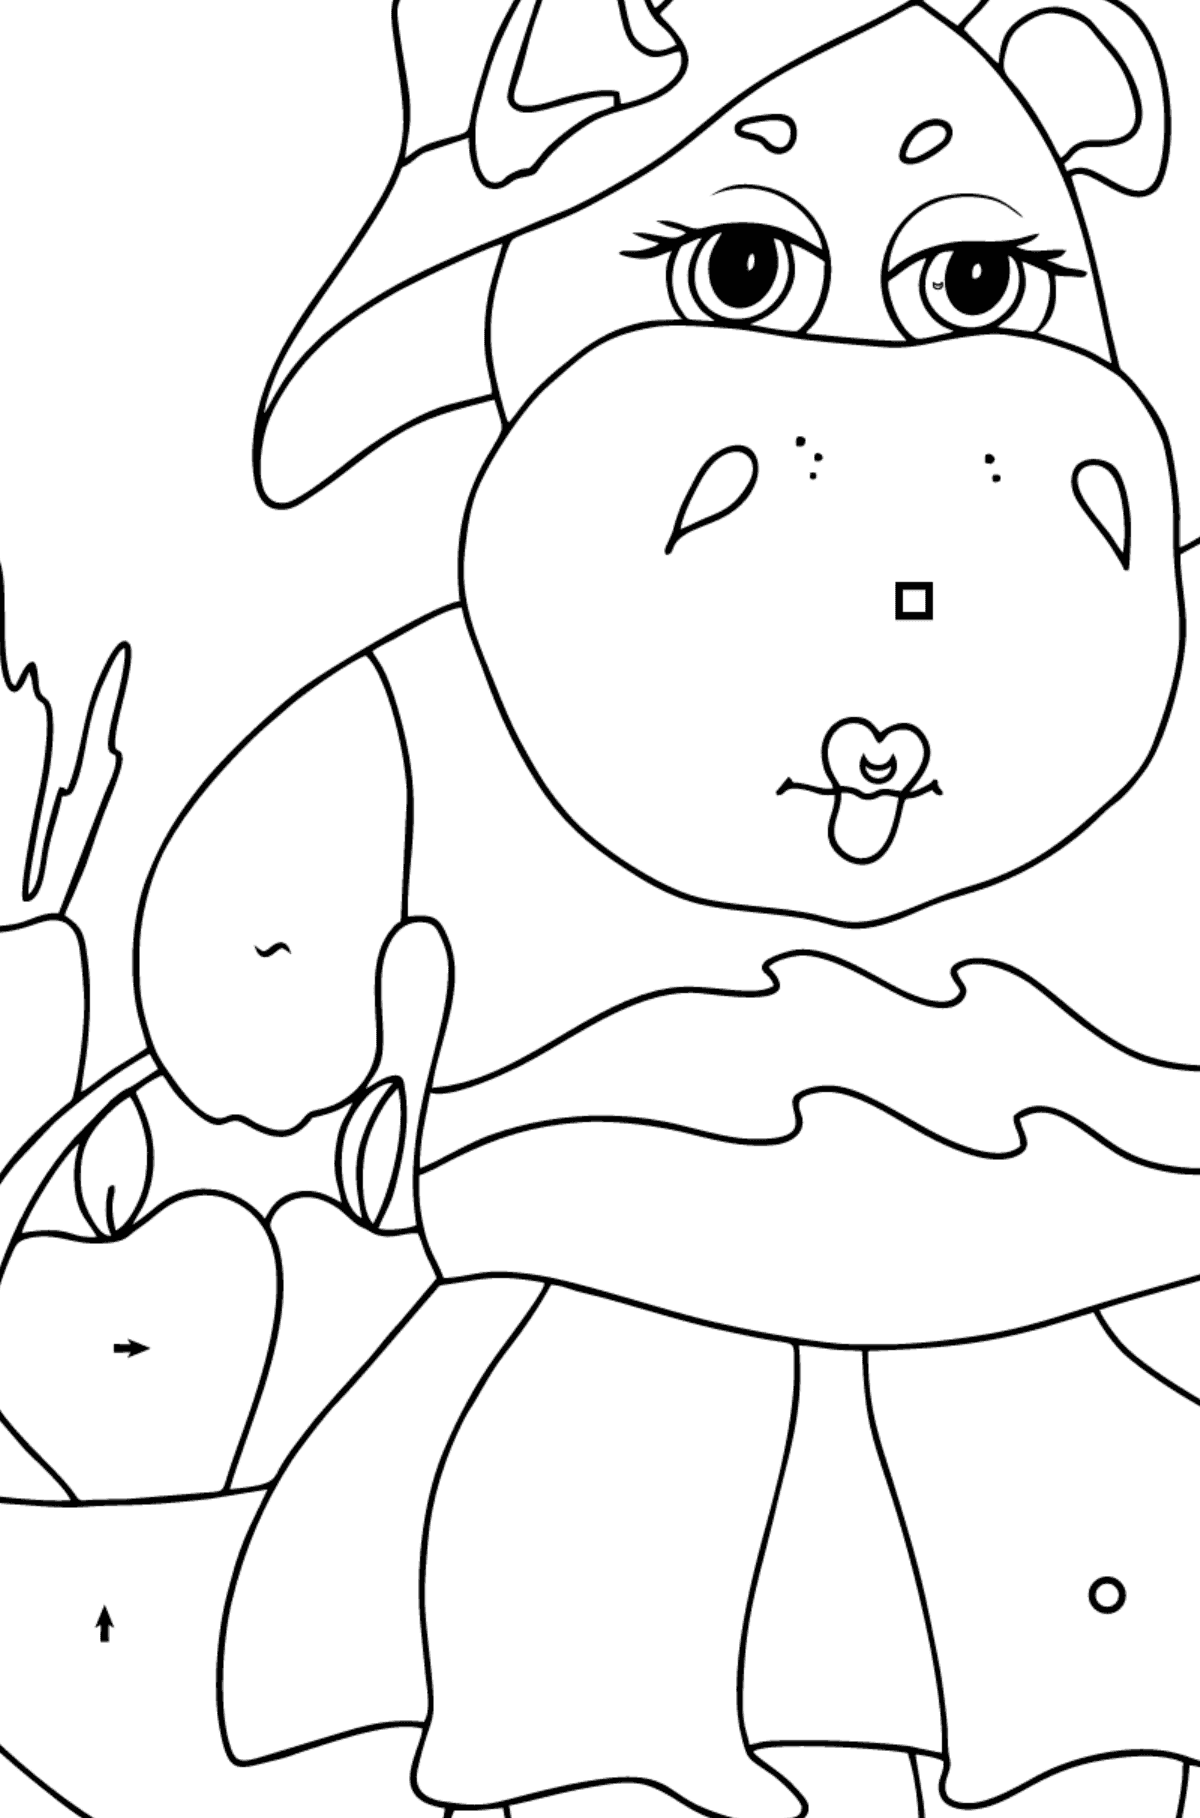 Coloring Page - A Hippo with a Basket of Carrots and Apples - Check it Out for Children  - Color by Symbols and Geometric Shapes